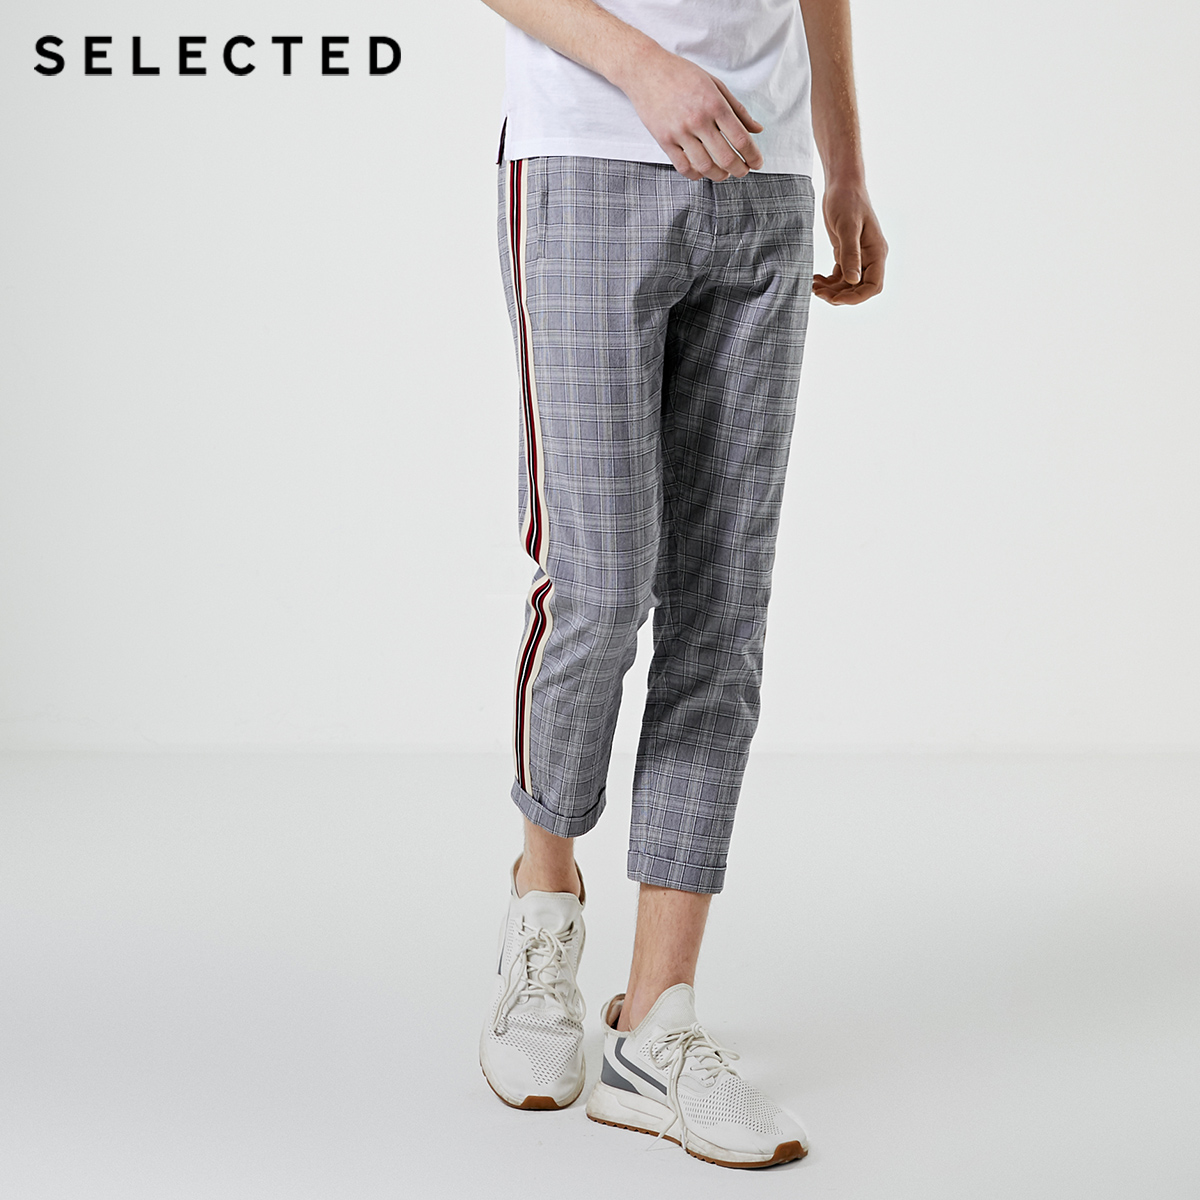 SELECTED Men's Autumn Striped Plaid Tapered Crop Pants S|419214552